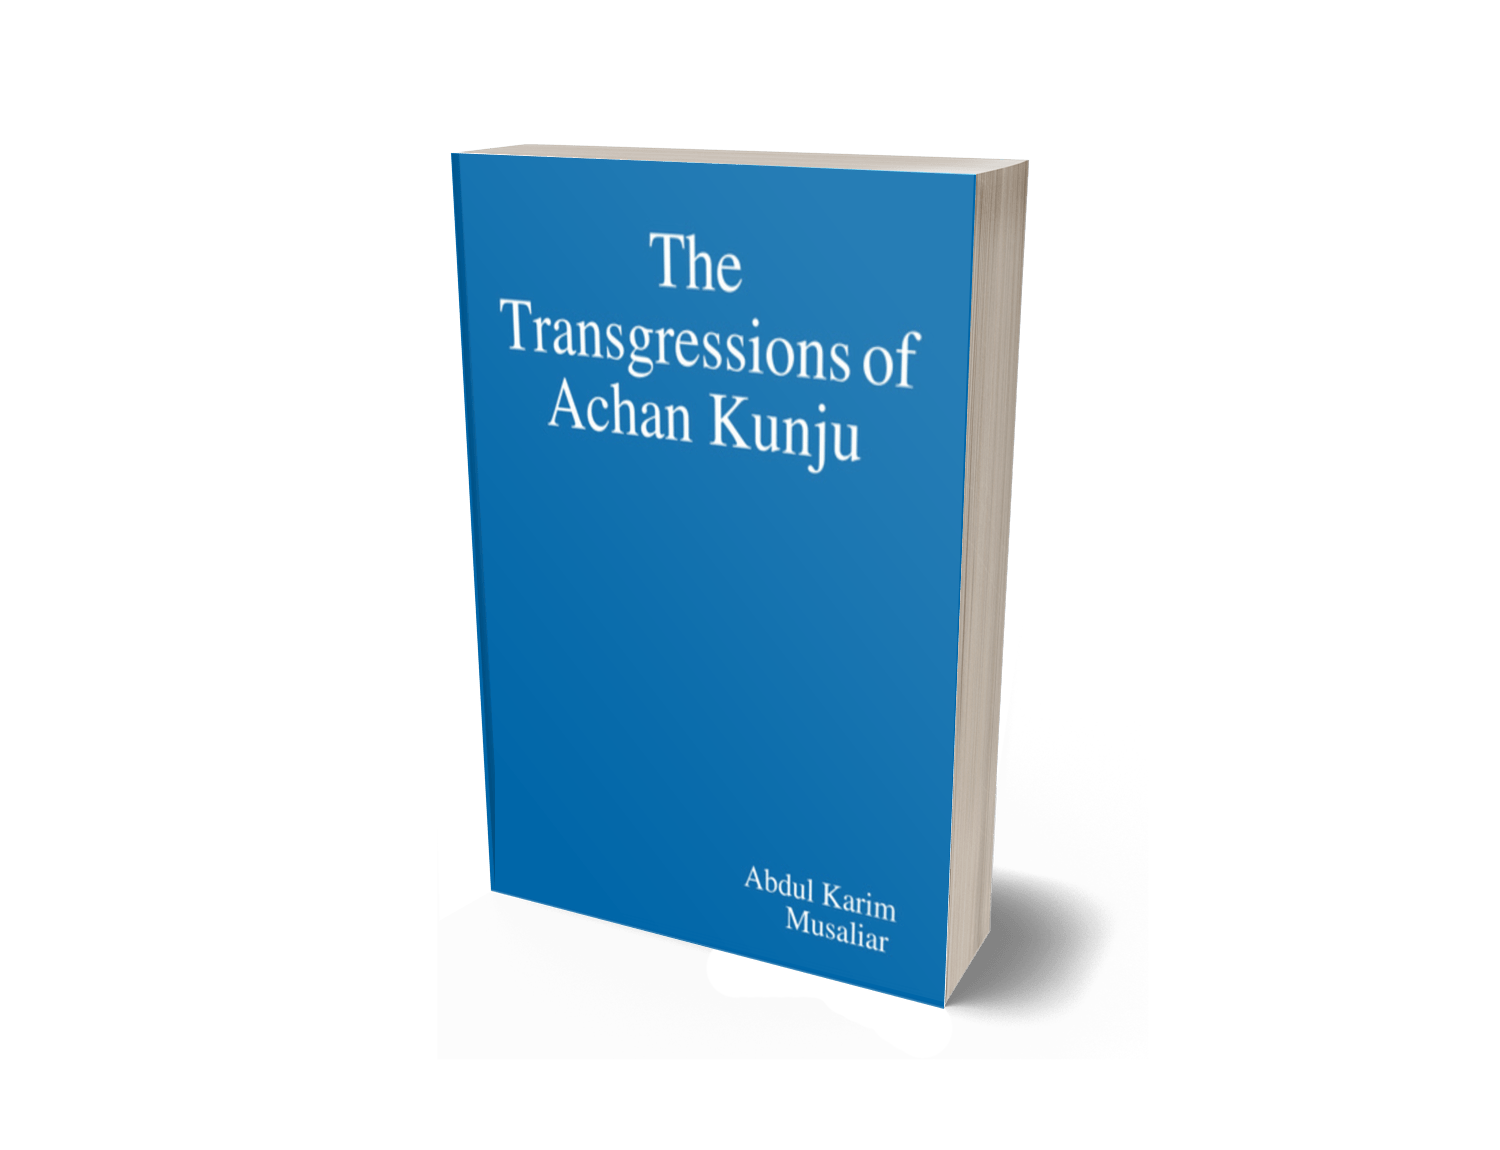 The Transgressions of Achan Kunju